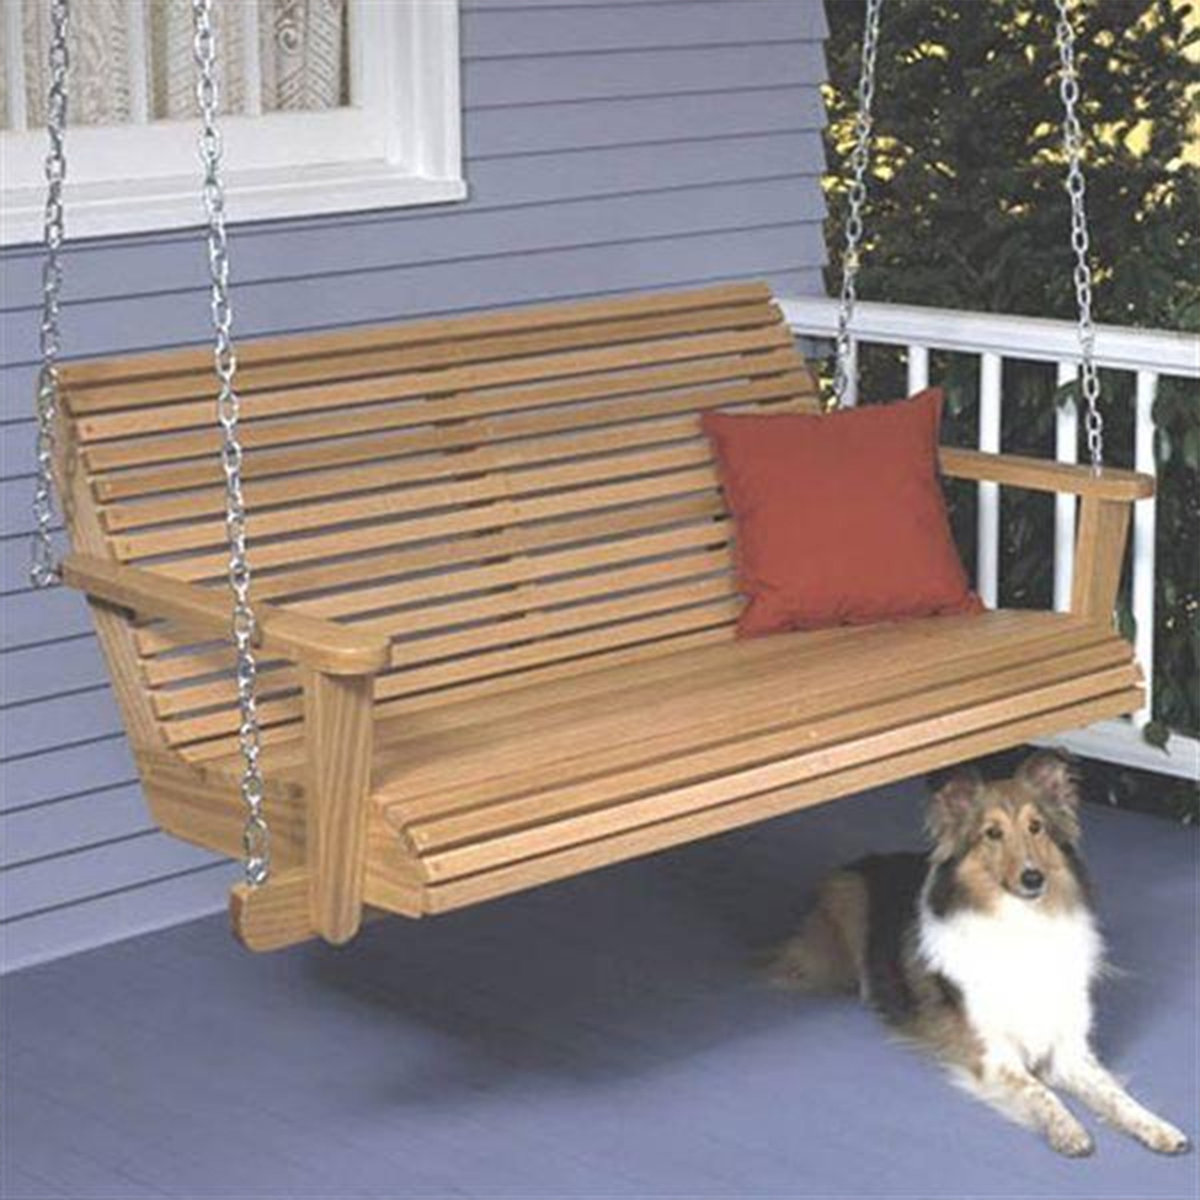 Woodworking Projects Plans: Woodworking Project Paper Plan To Build